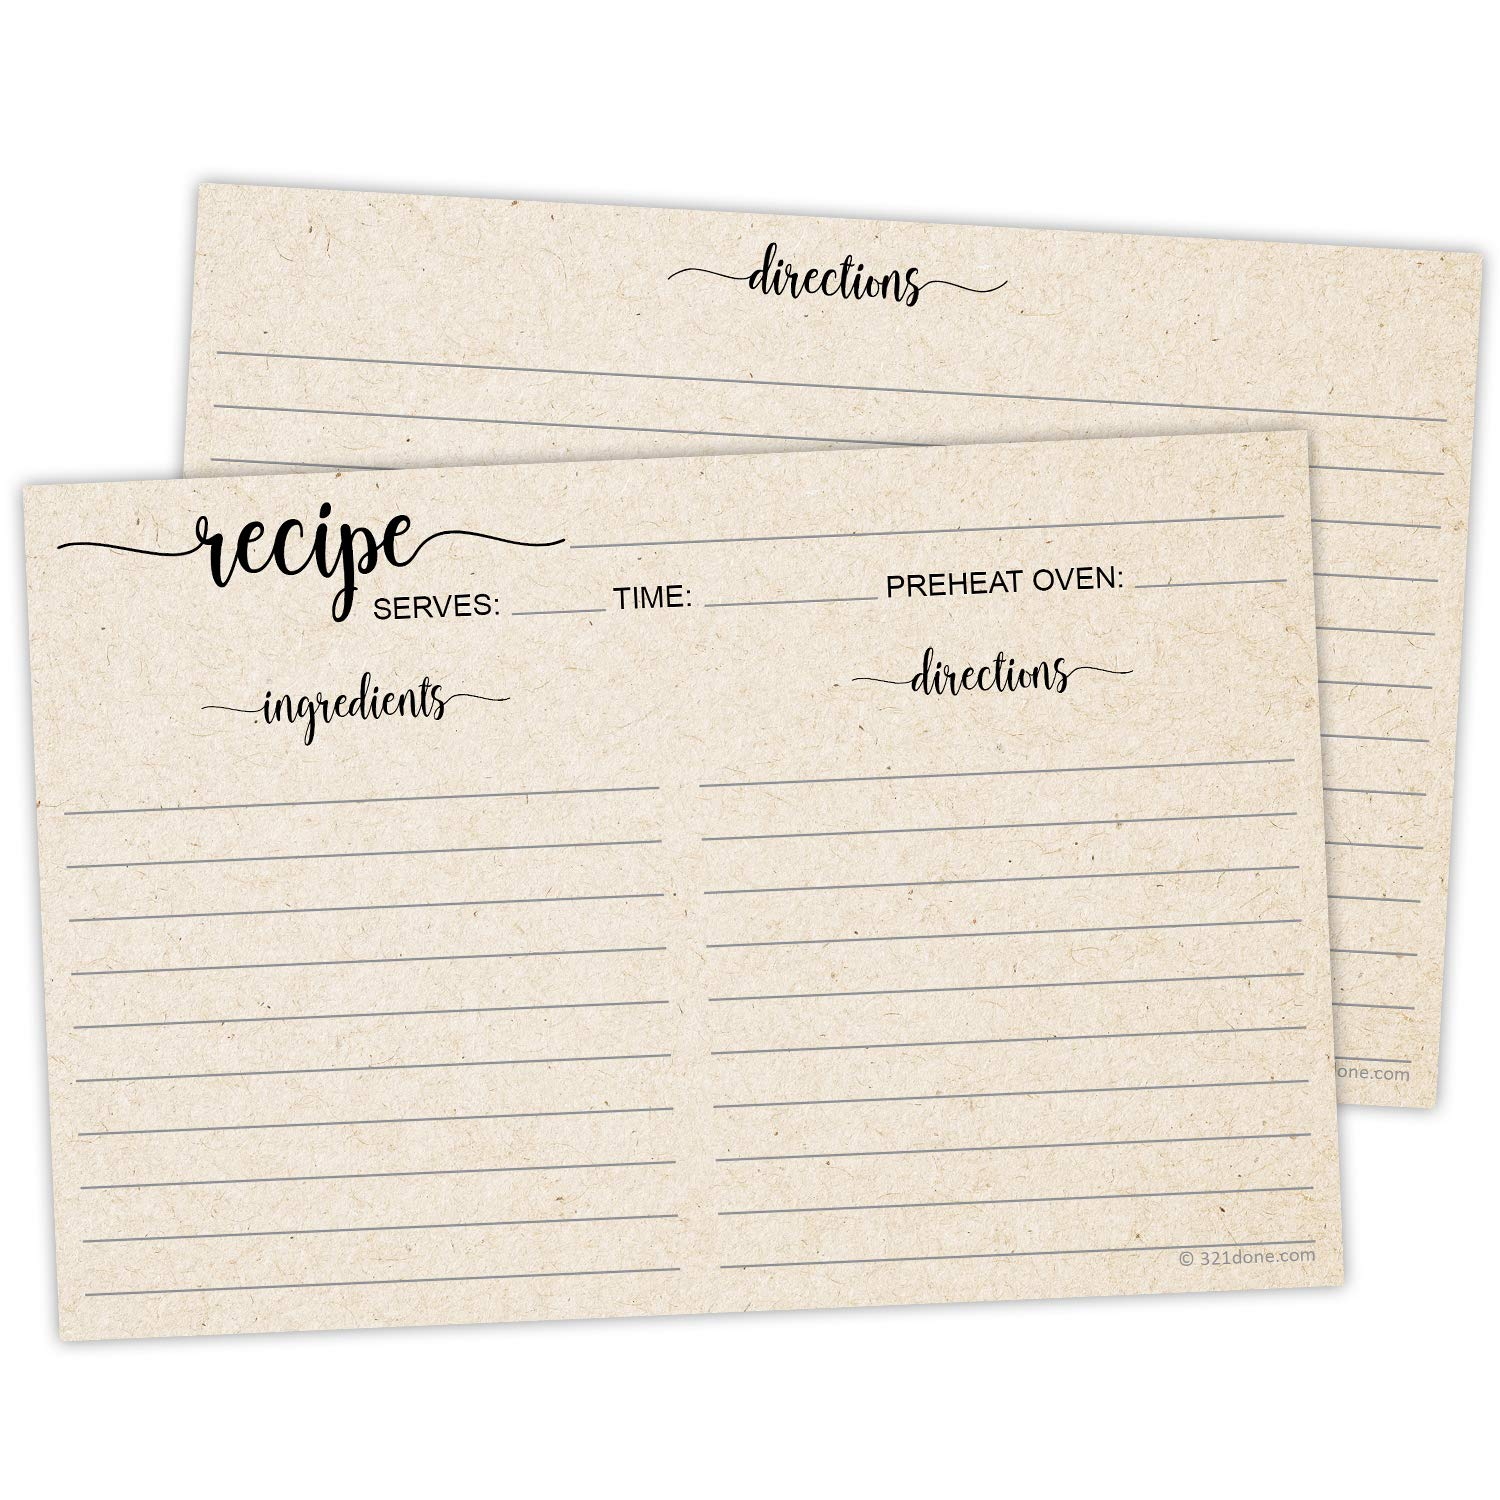 321Done 4'' x 6'' Recipe Cards (Set of 50) - Thick Double Sided Premium Card Stock with Kraft Paper Look - Made in USA - Script Font Minimalist, Large Kraft